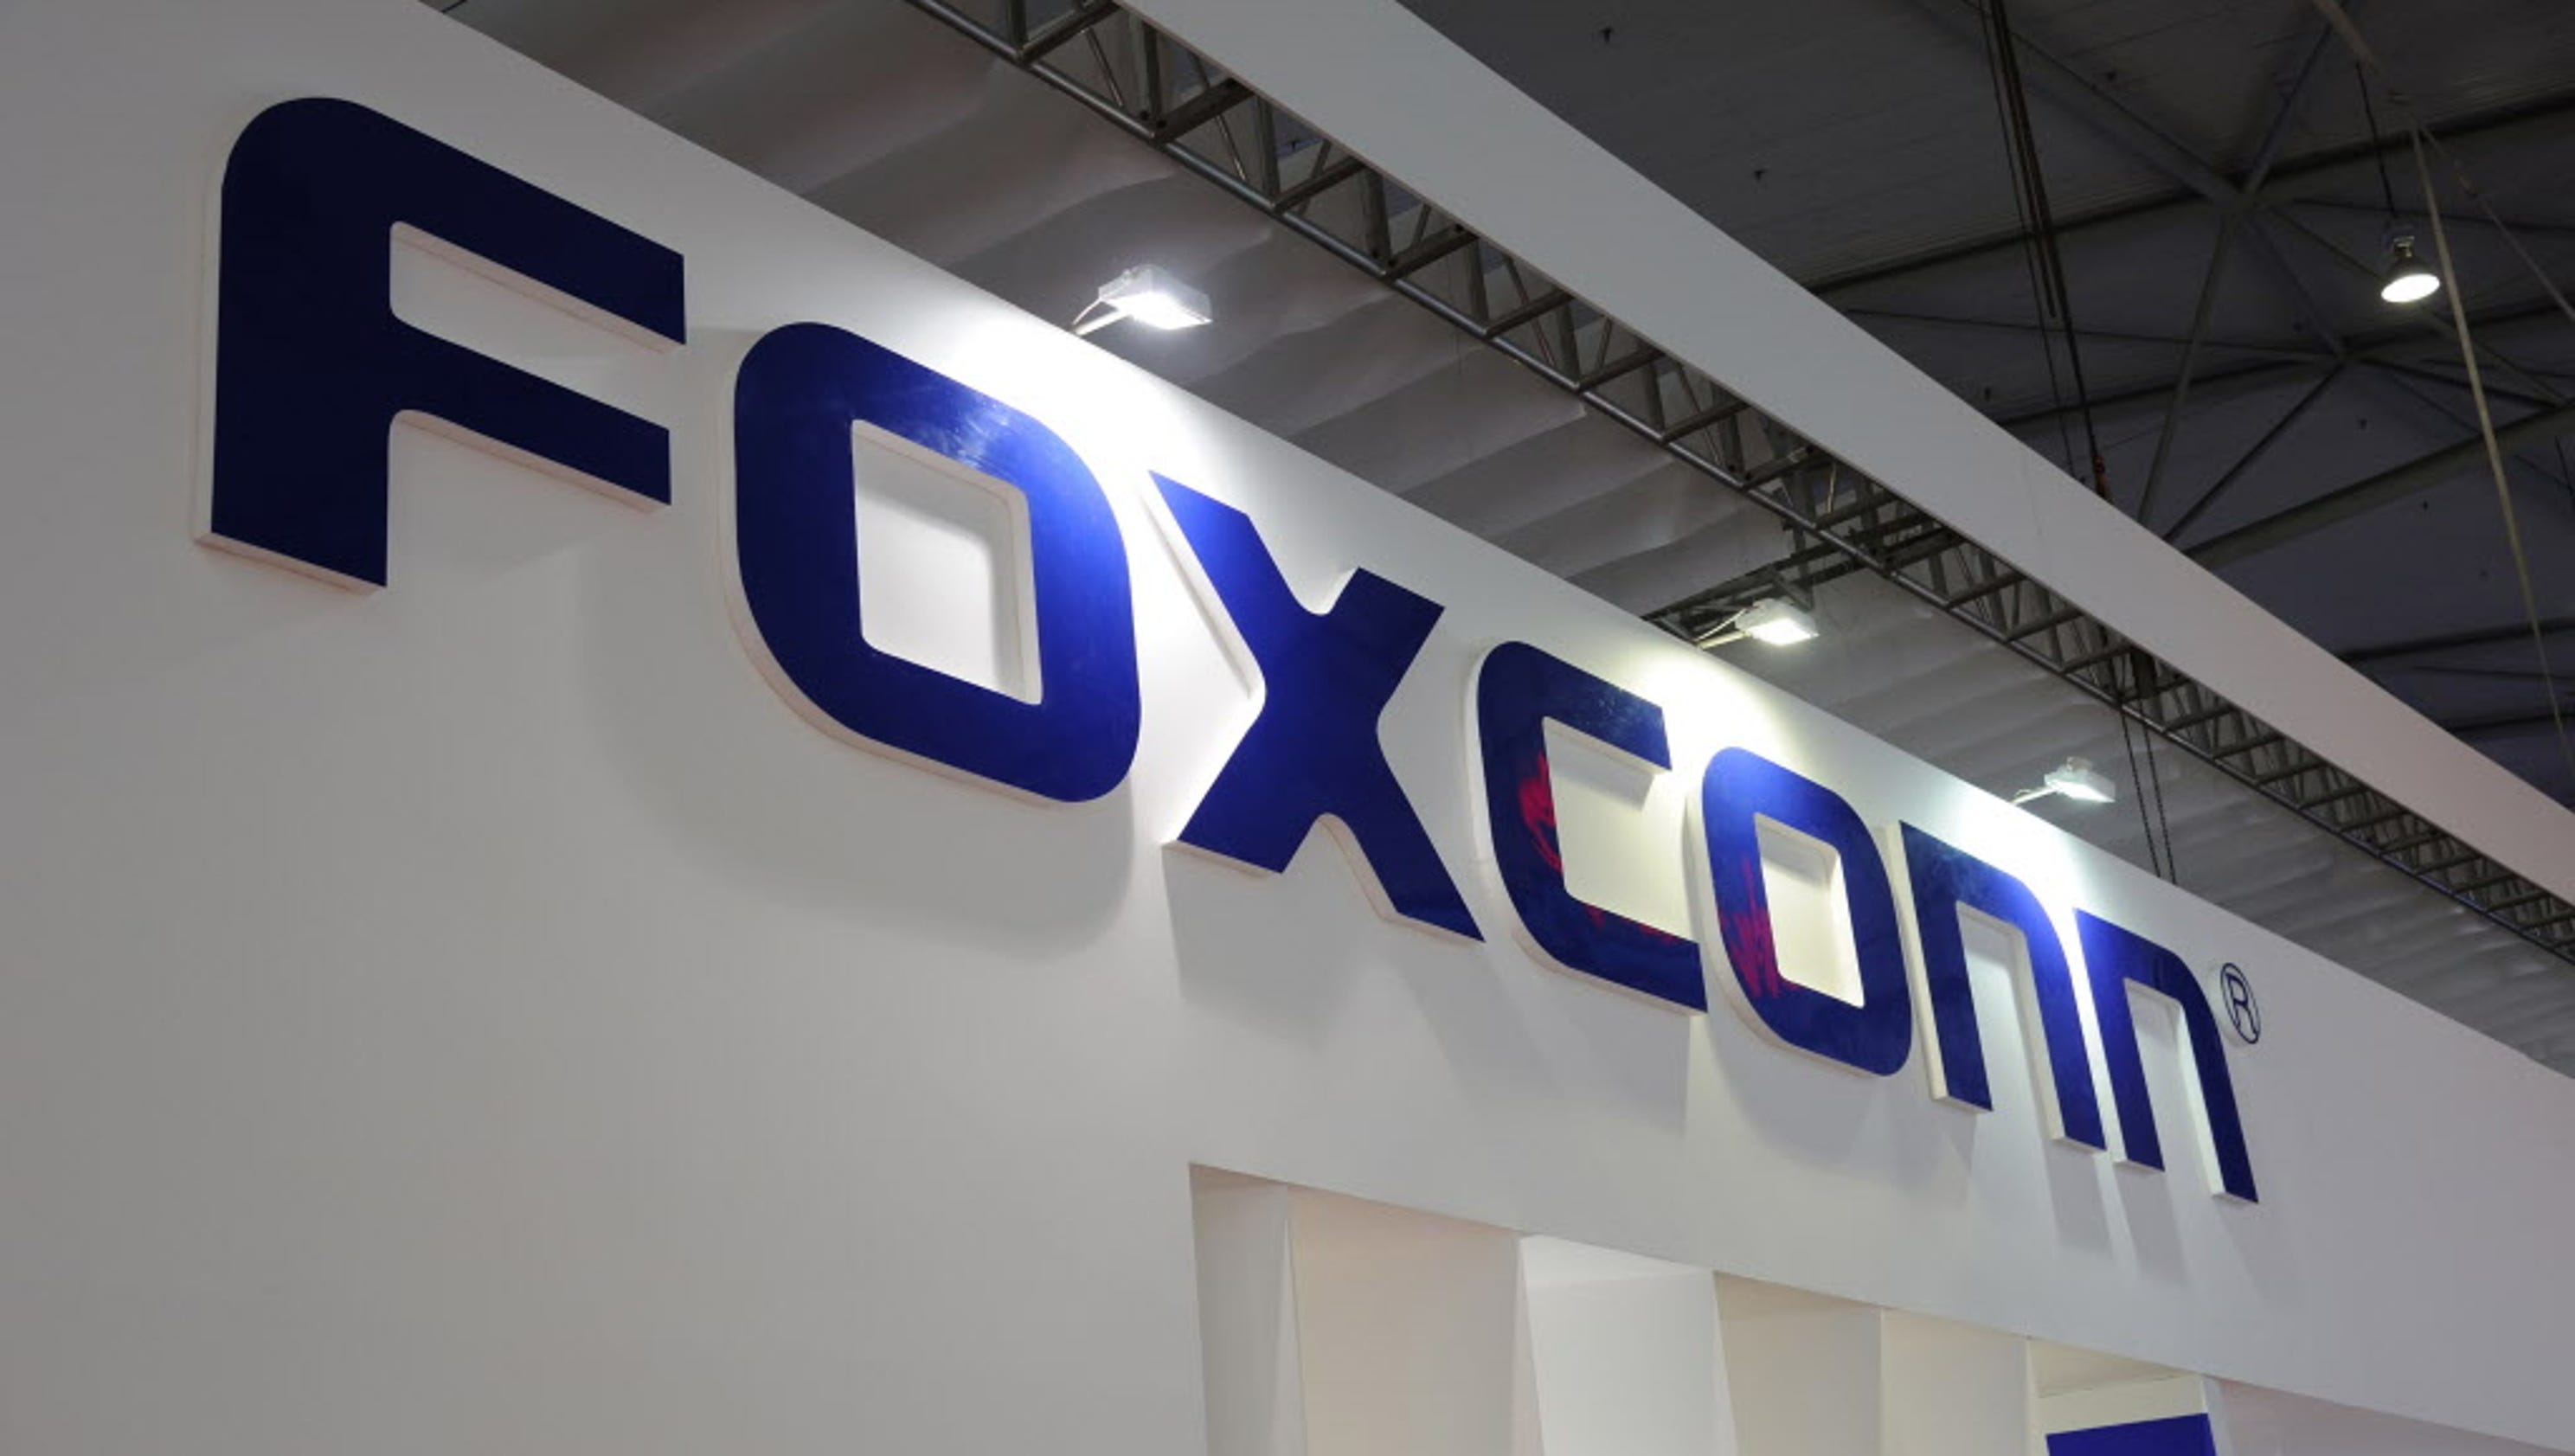 Foxconn shifts production focus away from large display panels, article says